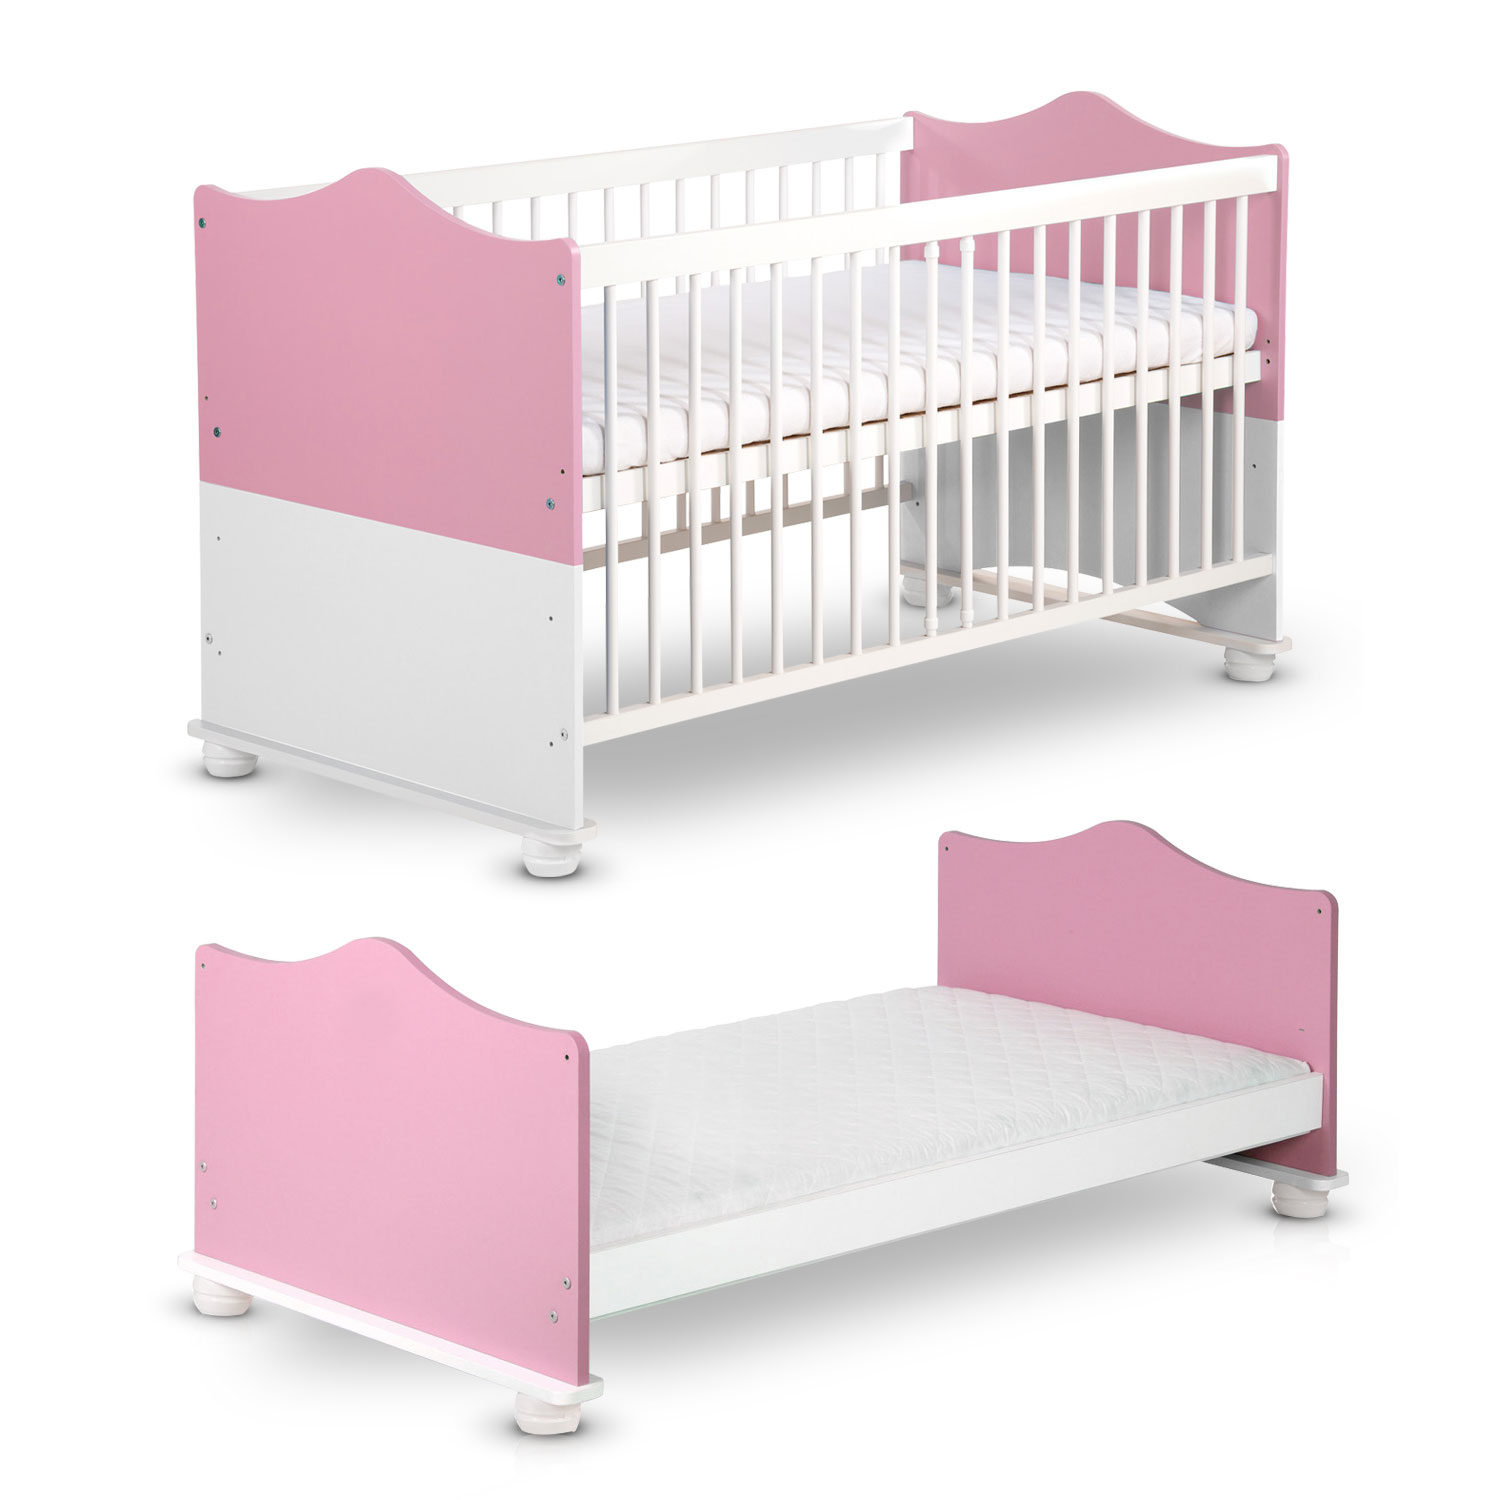 prinzessin babybett 140x70 umbaubar zum juniorbett kinderbett baby bett ebay. Black Bedroom Furniture Sets. Home Design Ideas